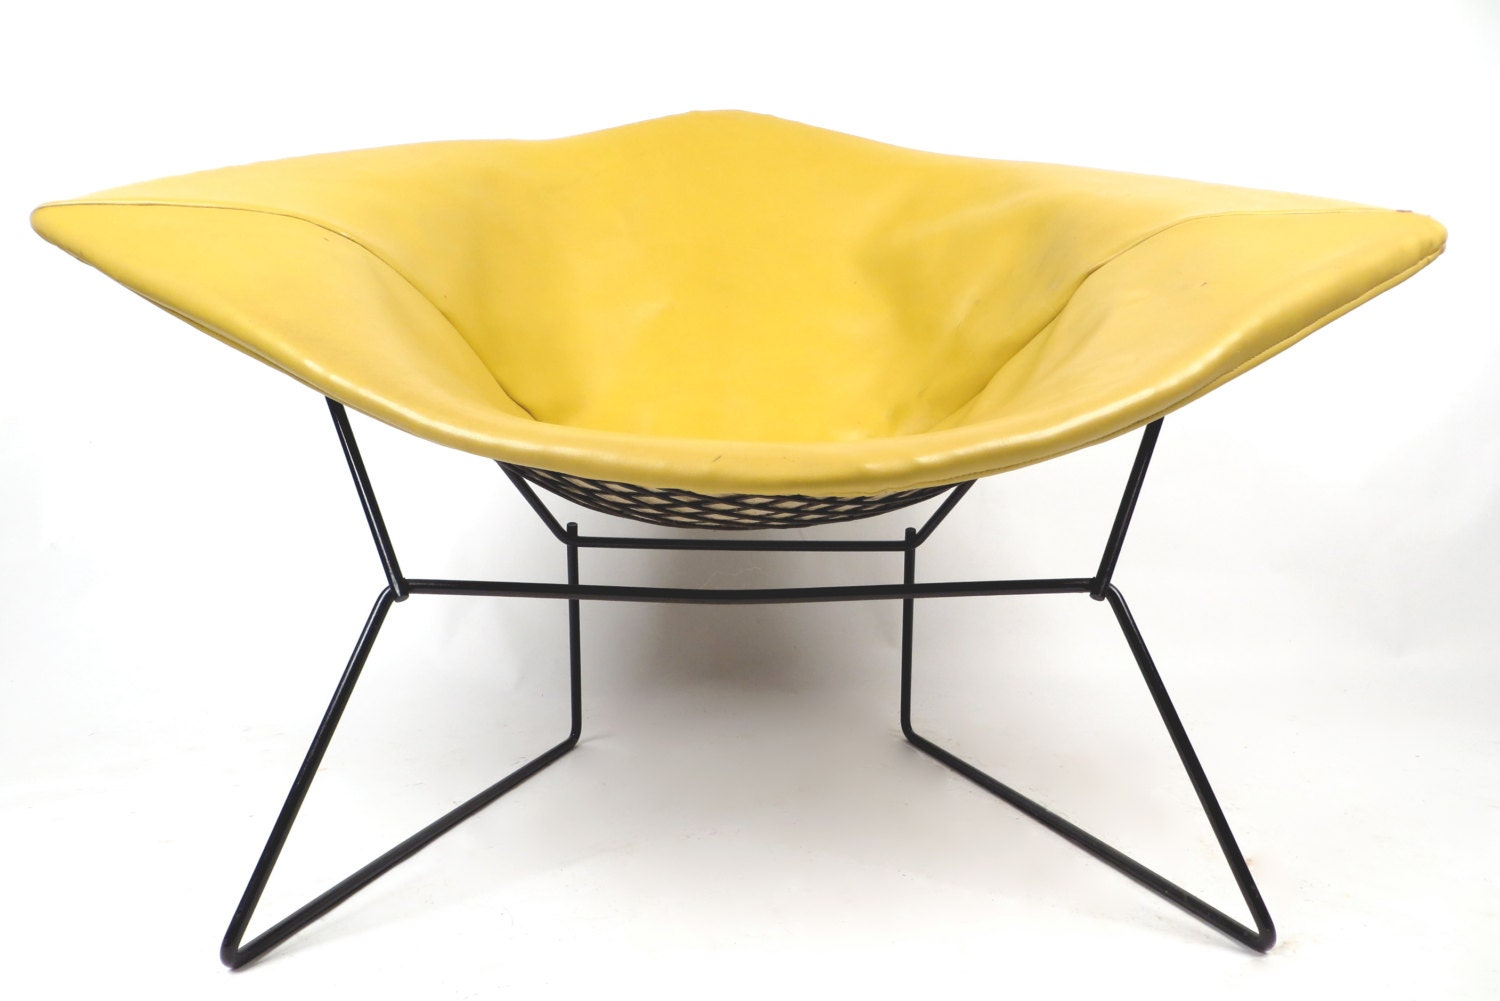 Knoll Bertoia large diamond chair with yellow cover. Free shipping in USA on sale - hermanmillermodern